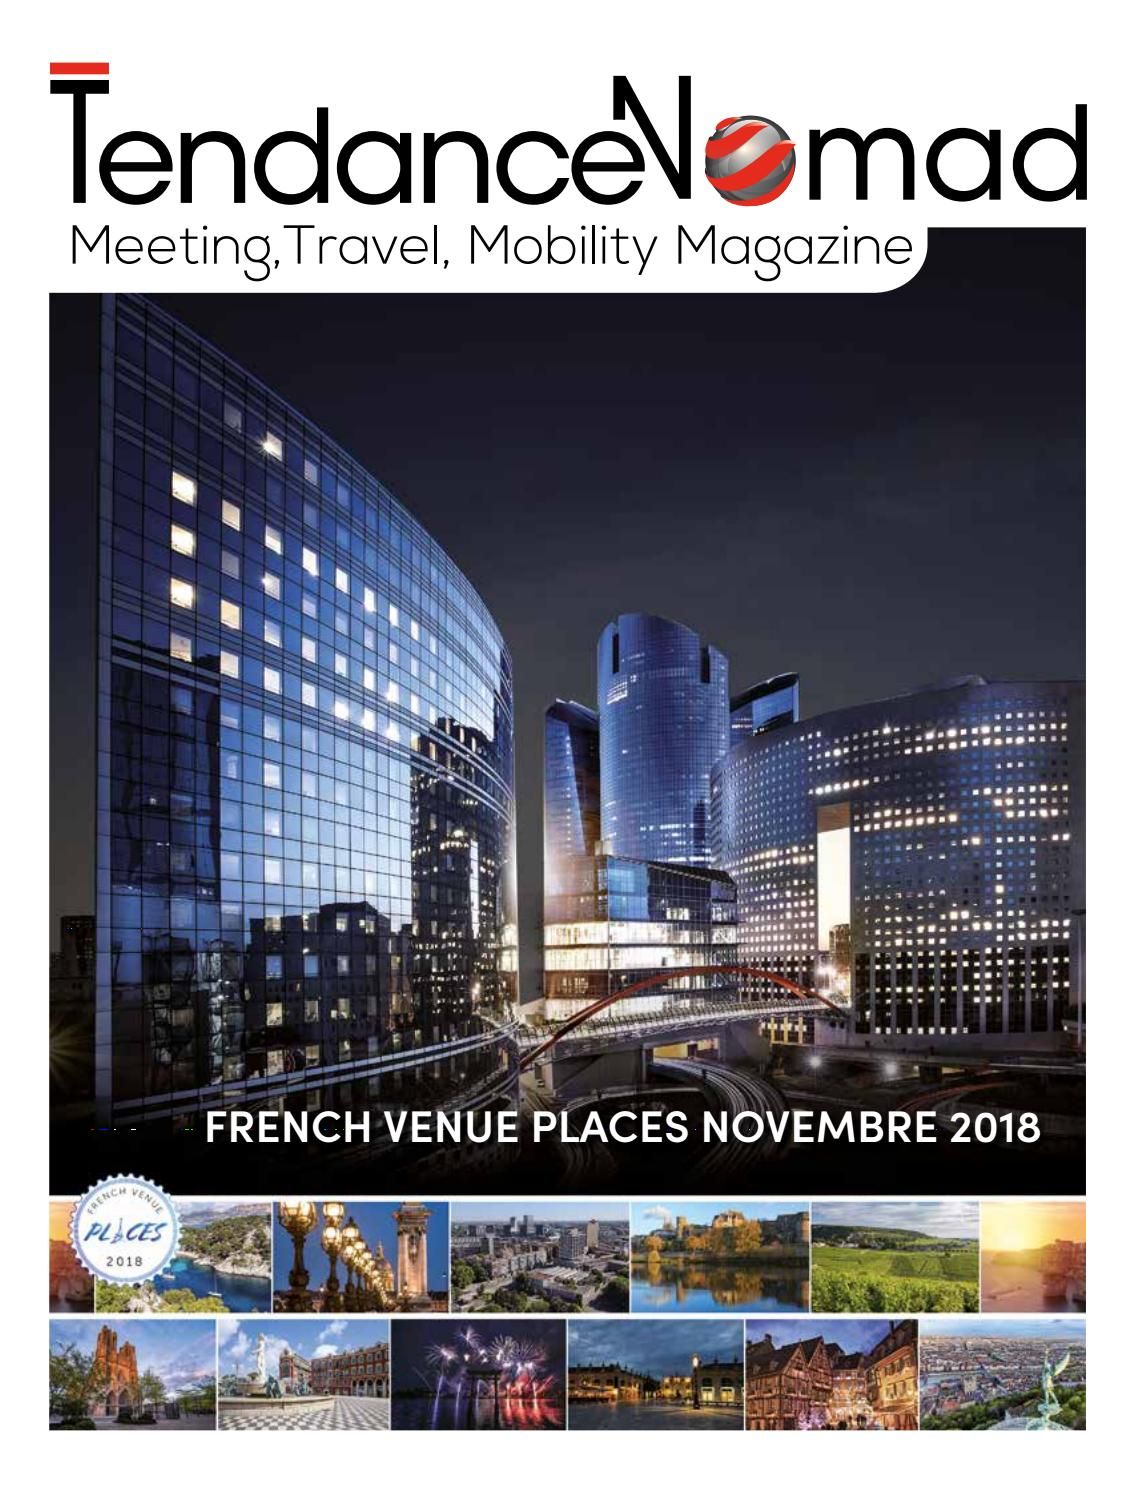 French Venue Places Novembre 2018 By Tendancenomad Publishing Issuu